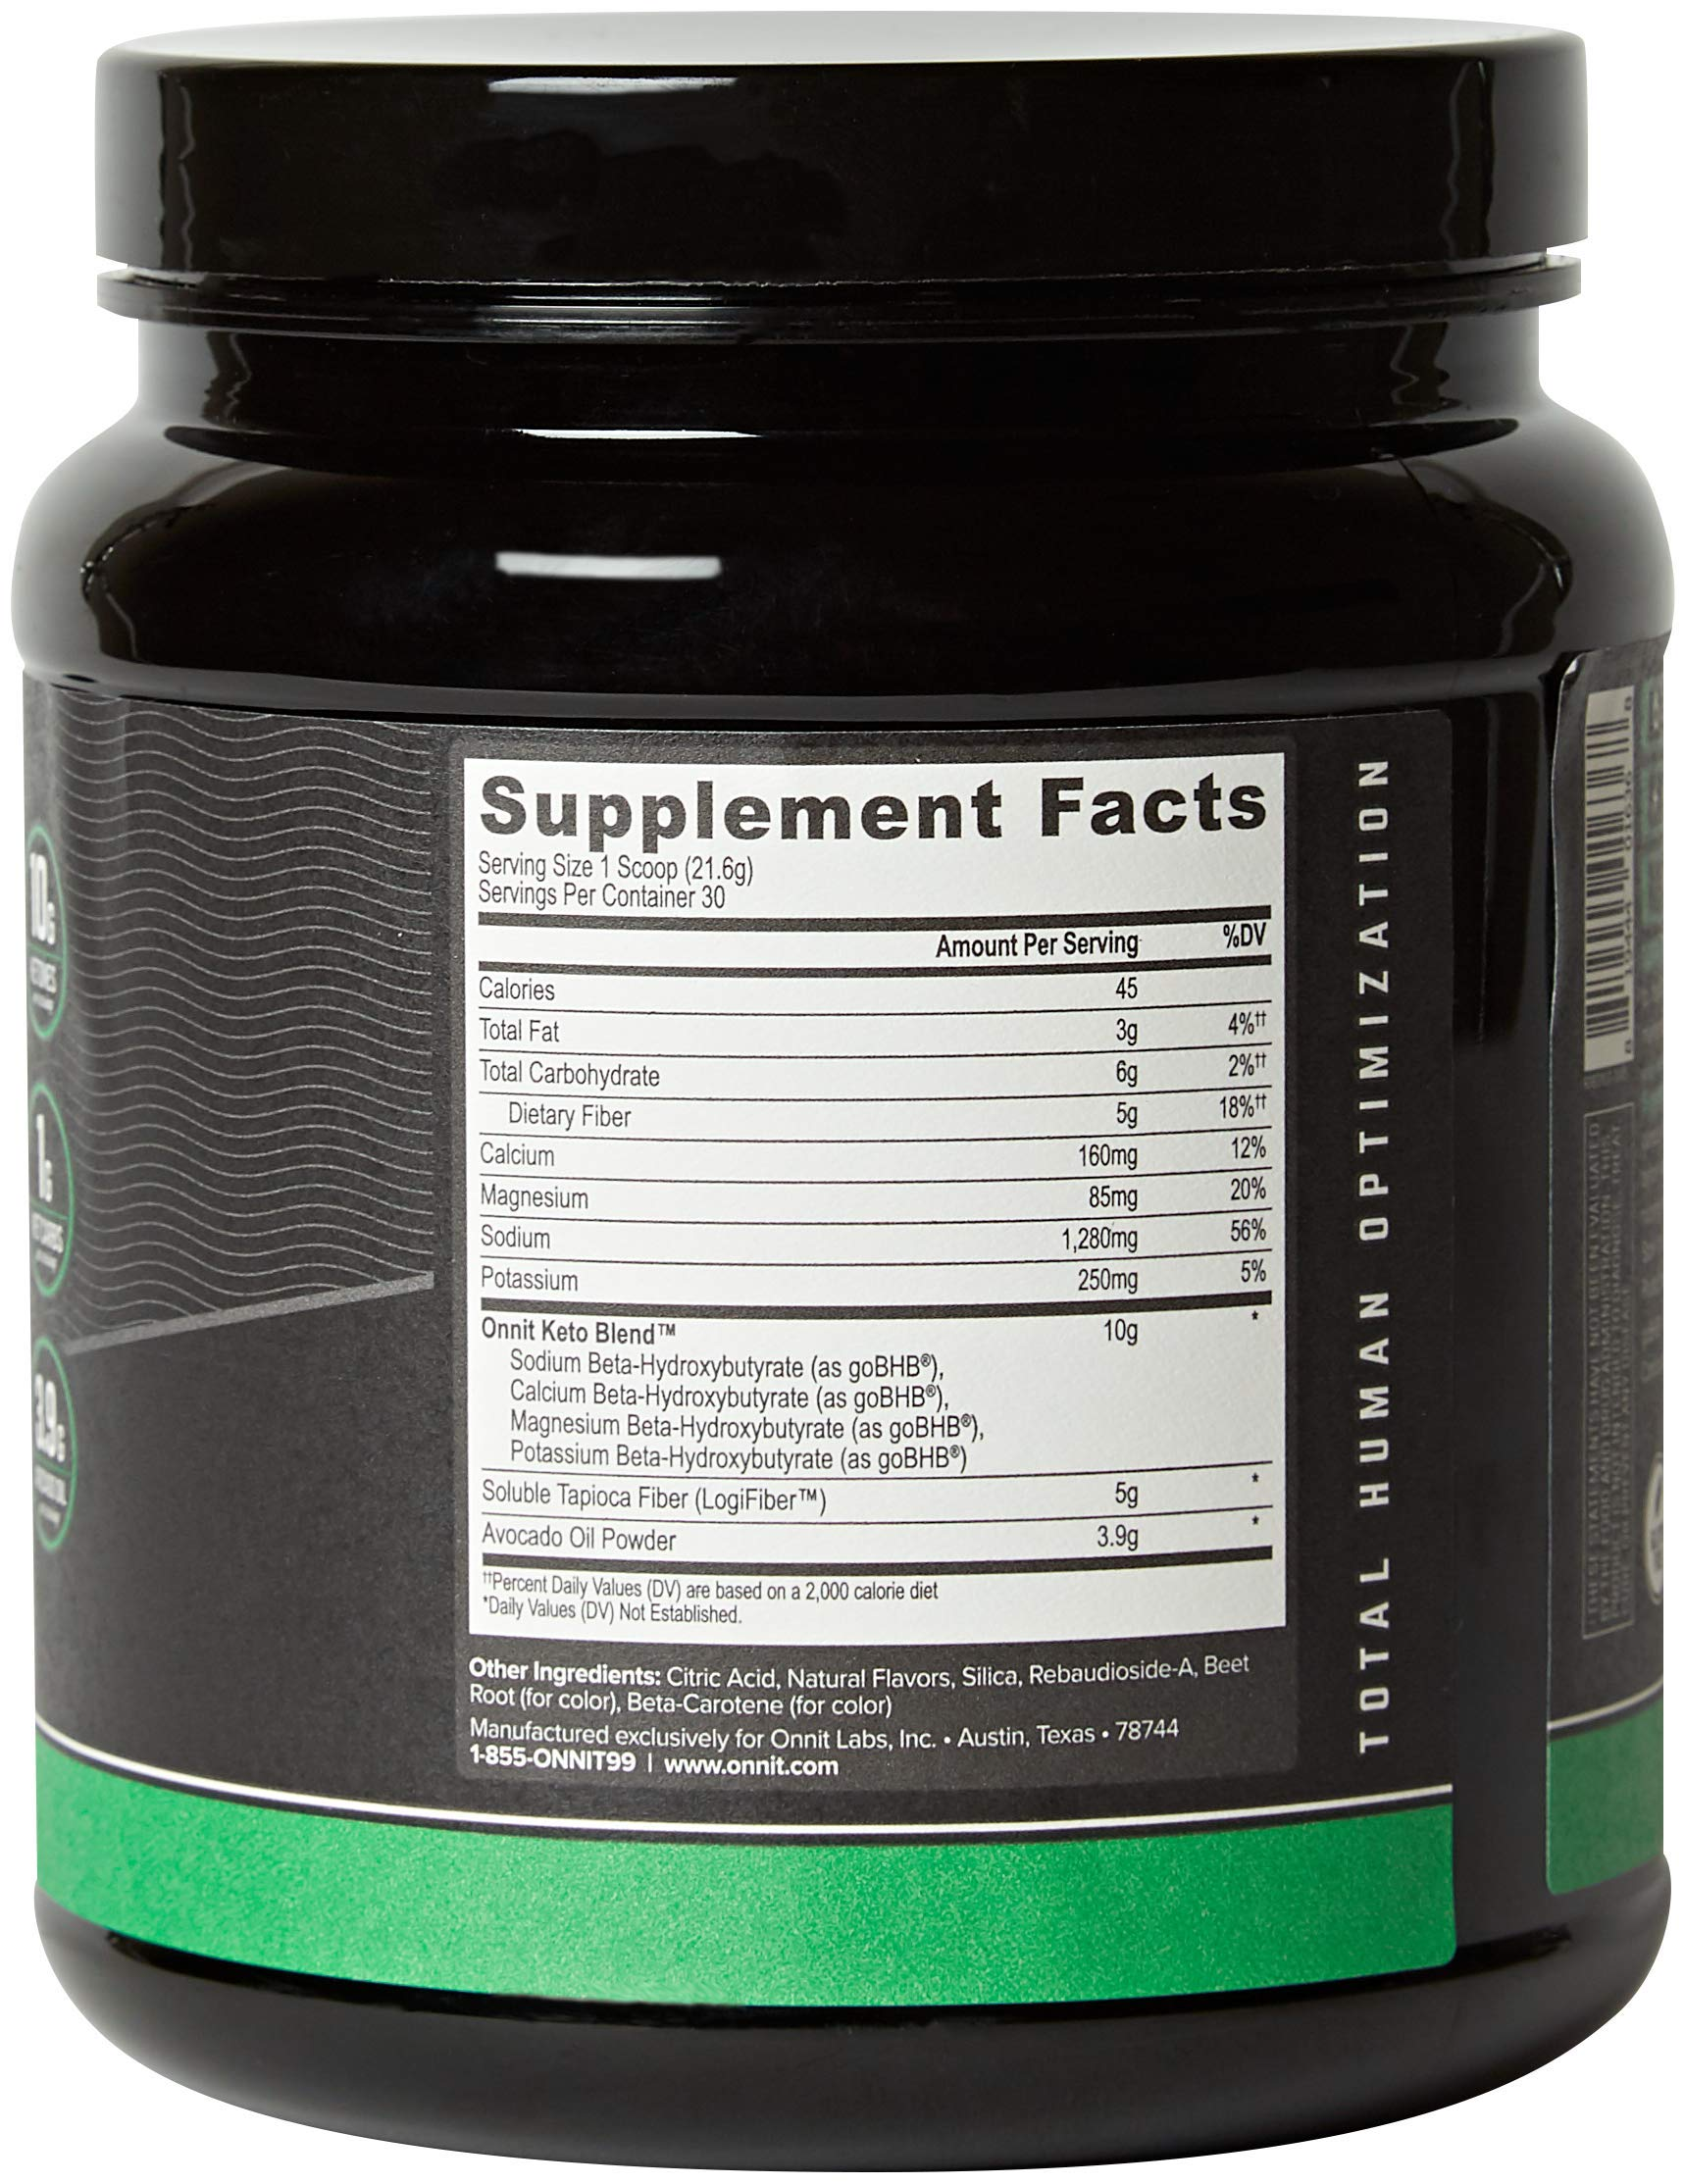 ONNIT Total Keto | Exogenous Ketones Supplement for Low Carb Diet | Premium Value Keto Supplement at 300g Ketone per Tub | Perfect Keto Fuel for Keto Shakes | Watermelon Flavor | 30 Servings by ONNIT (Image #2)